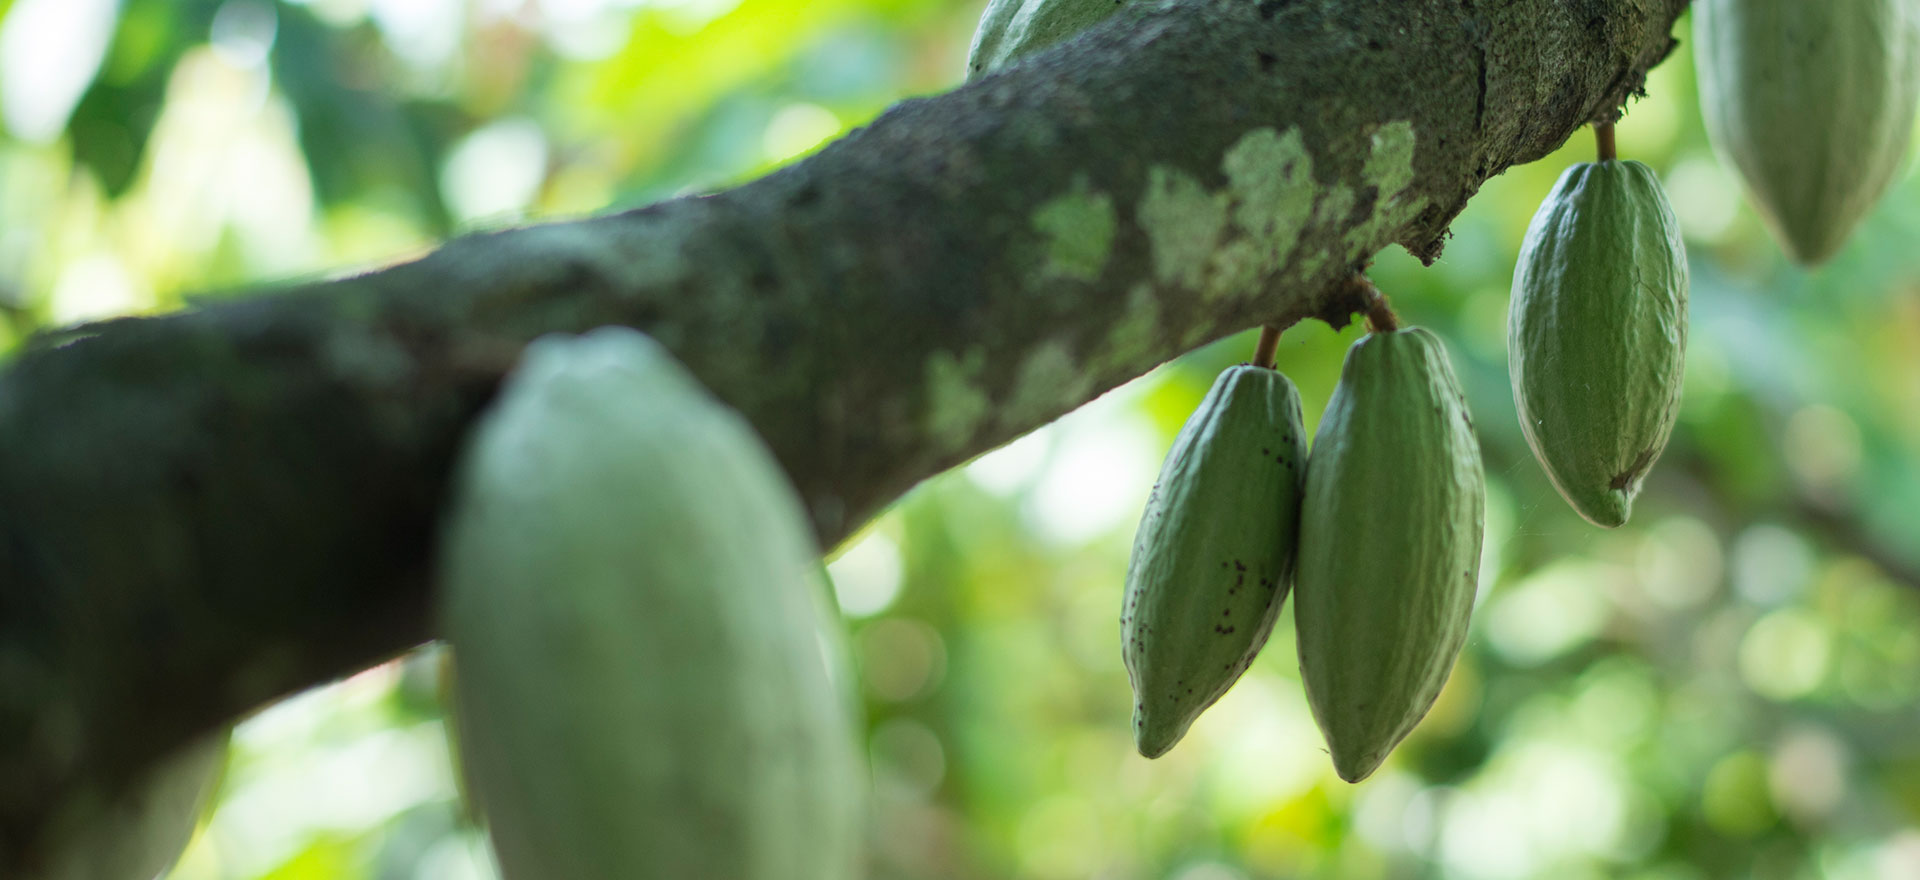 Picture of Cocoa tree branch with cocoa fruits hanging off.